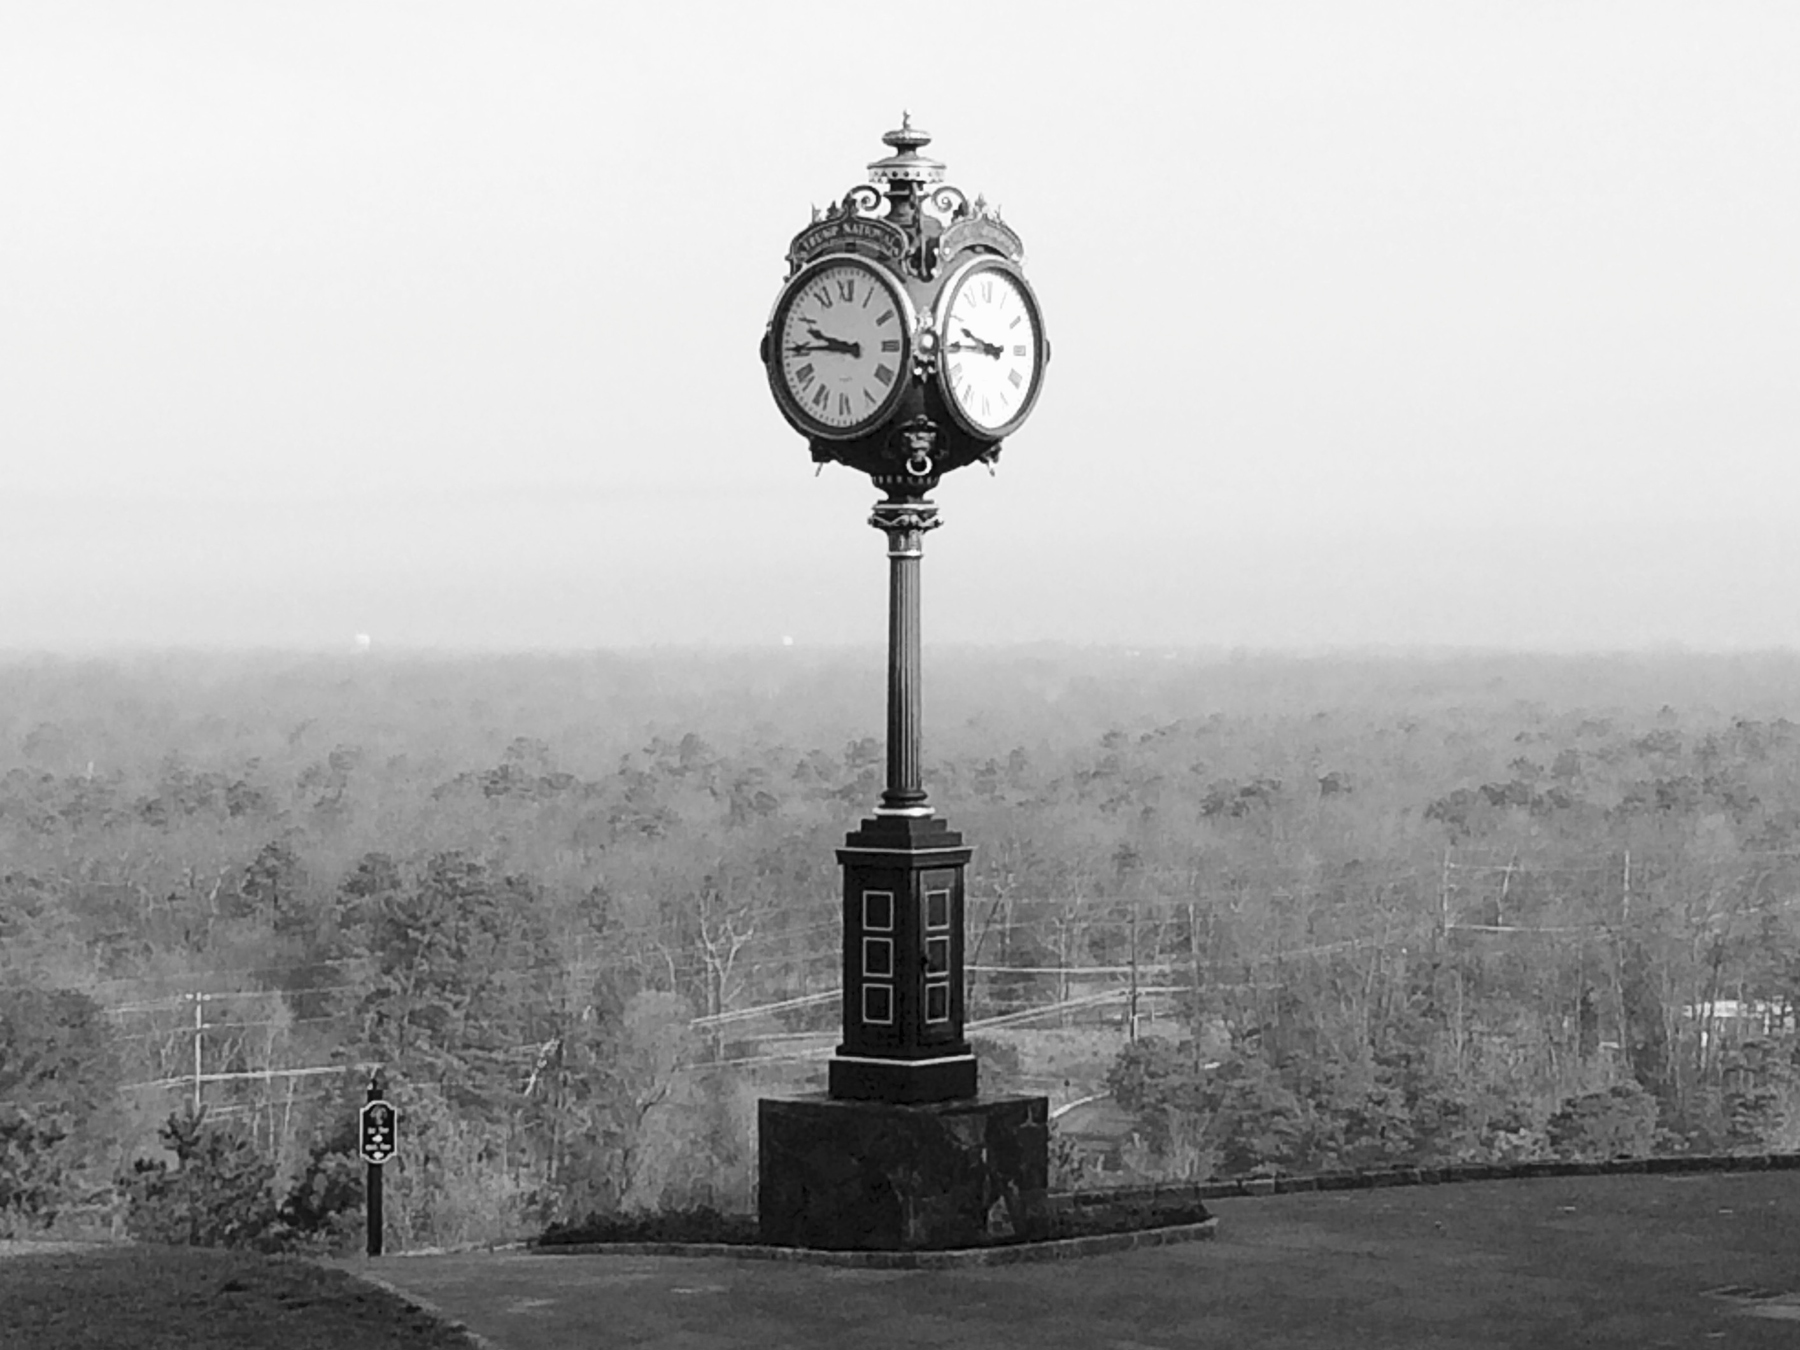 Vintage looking clock tower on the crest of a hill in south Jersey